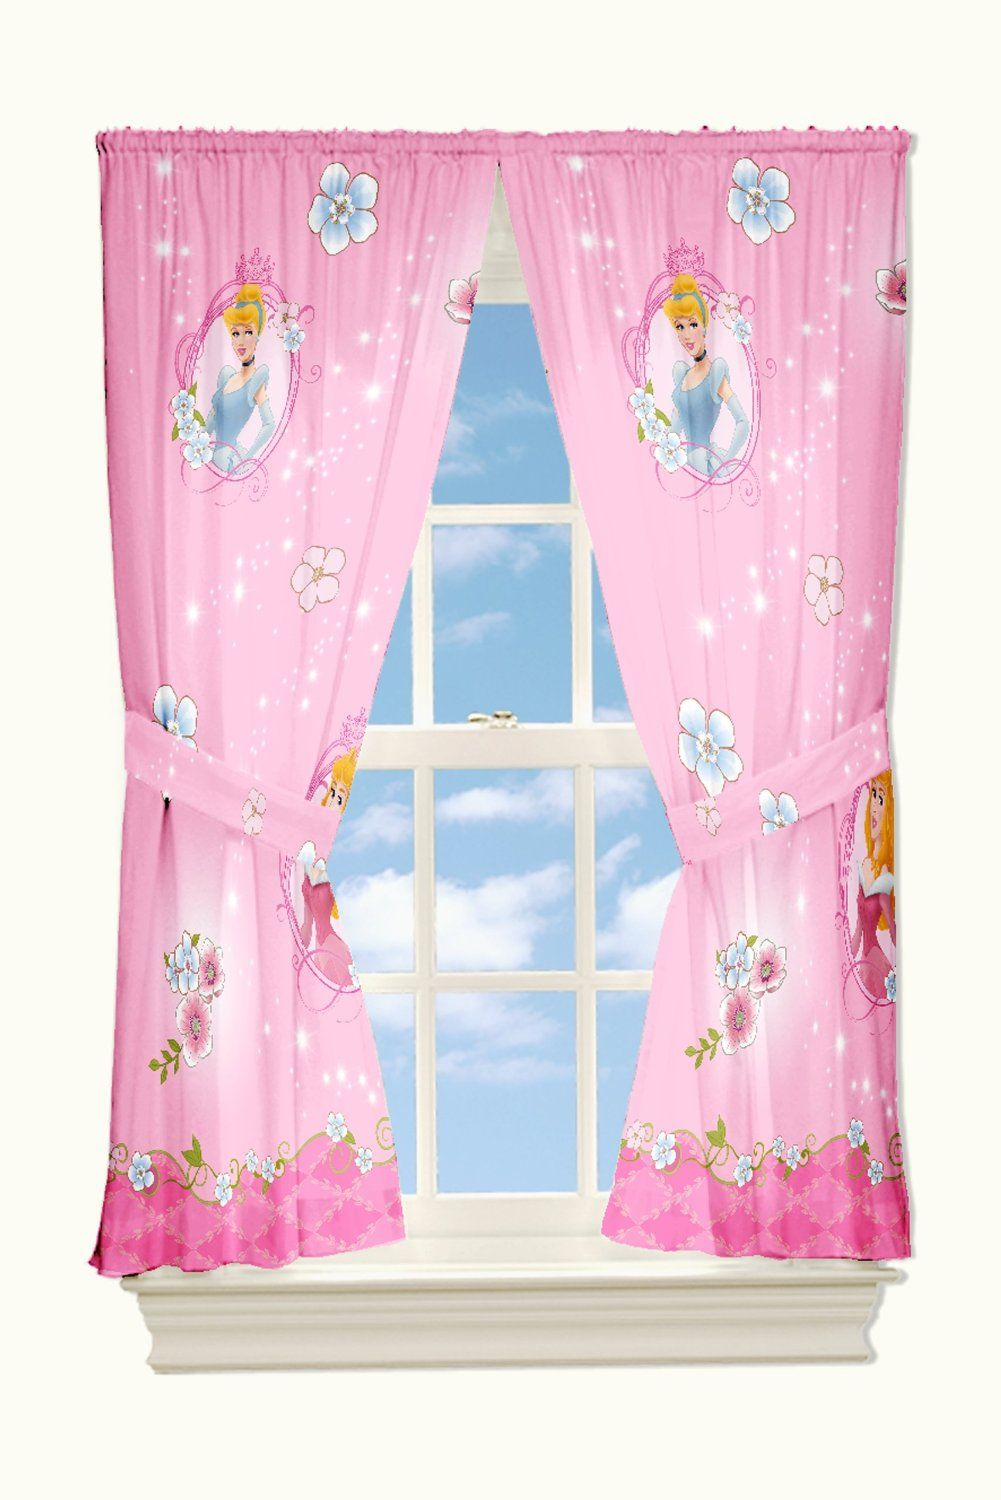 Princess Girls Bedroom Sweet Pink Bedroom Curtains For Girls Bedroom Accessories Lovely